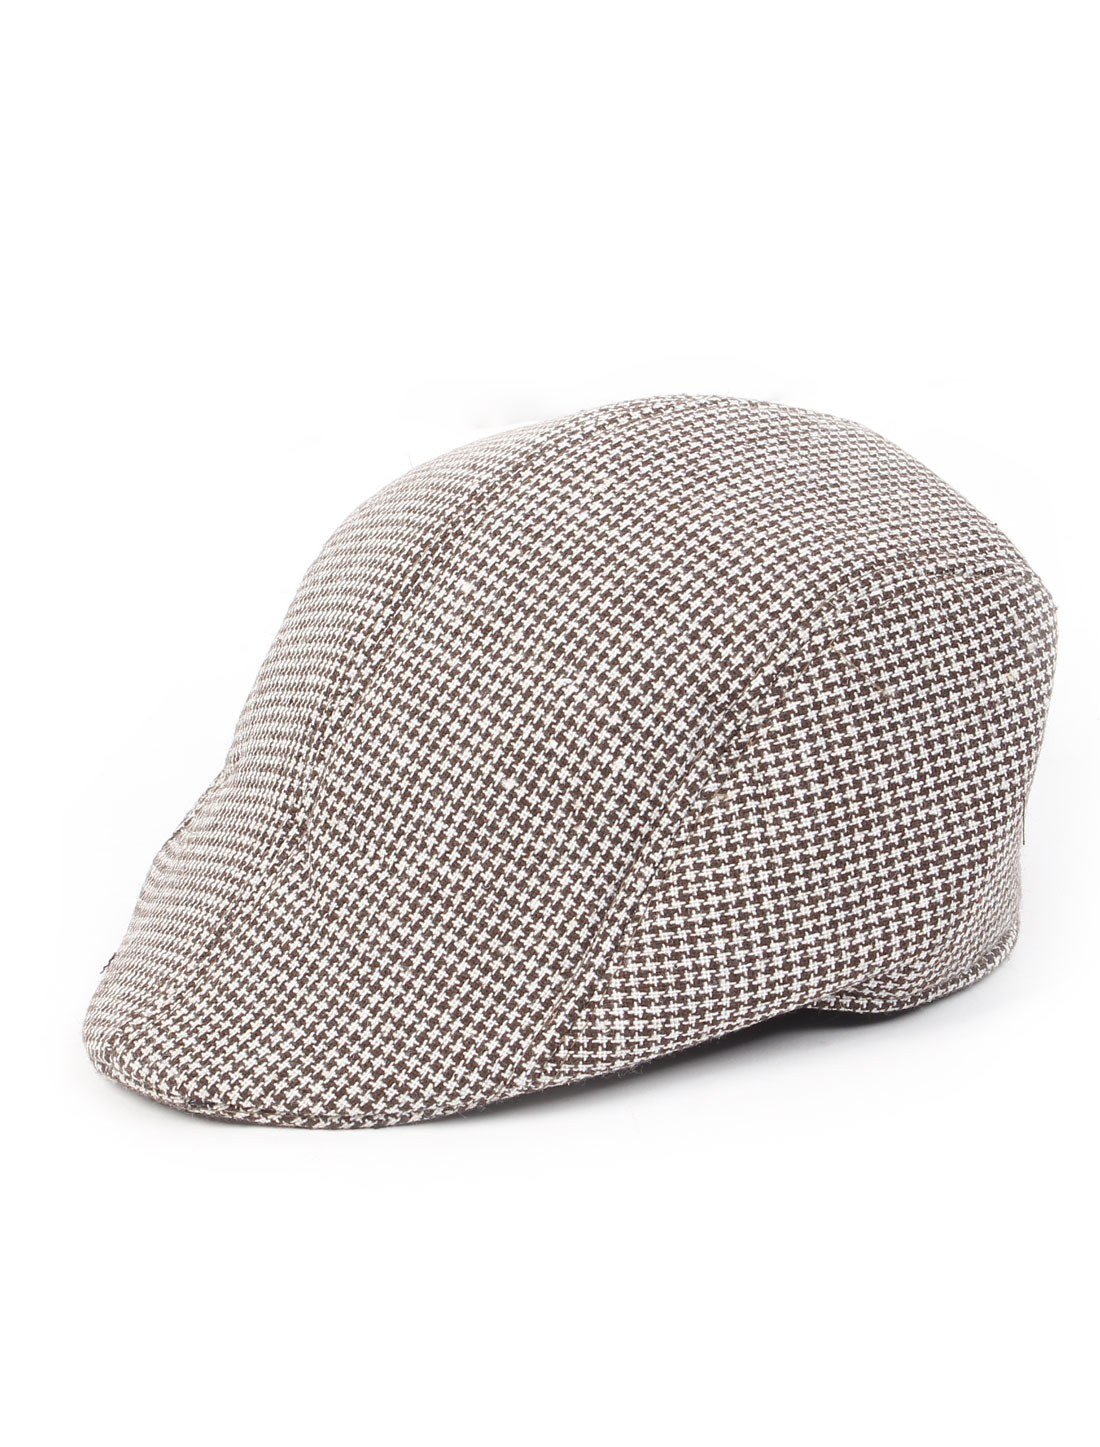 Men Herringbone Pattern Newsboy Hat Ascot Flat Cap Coffee Color White